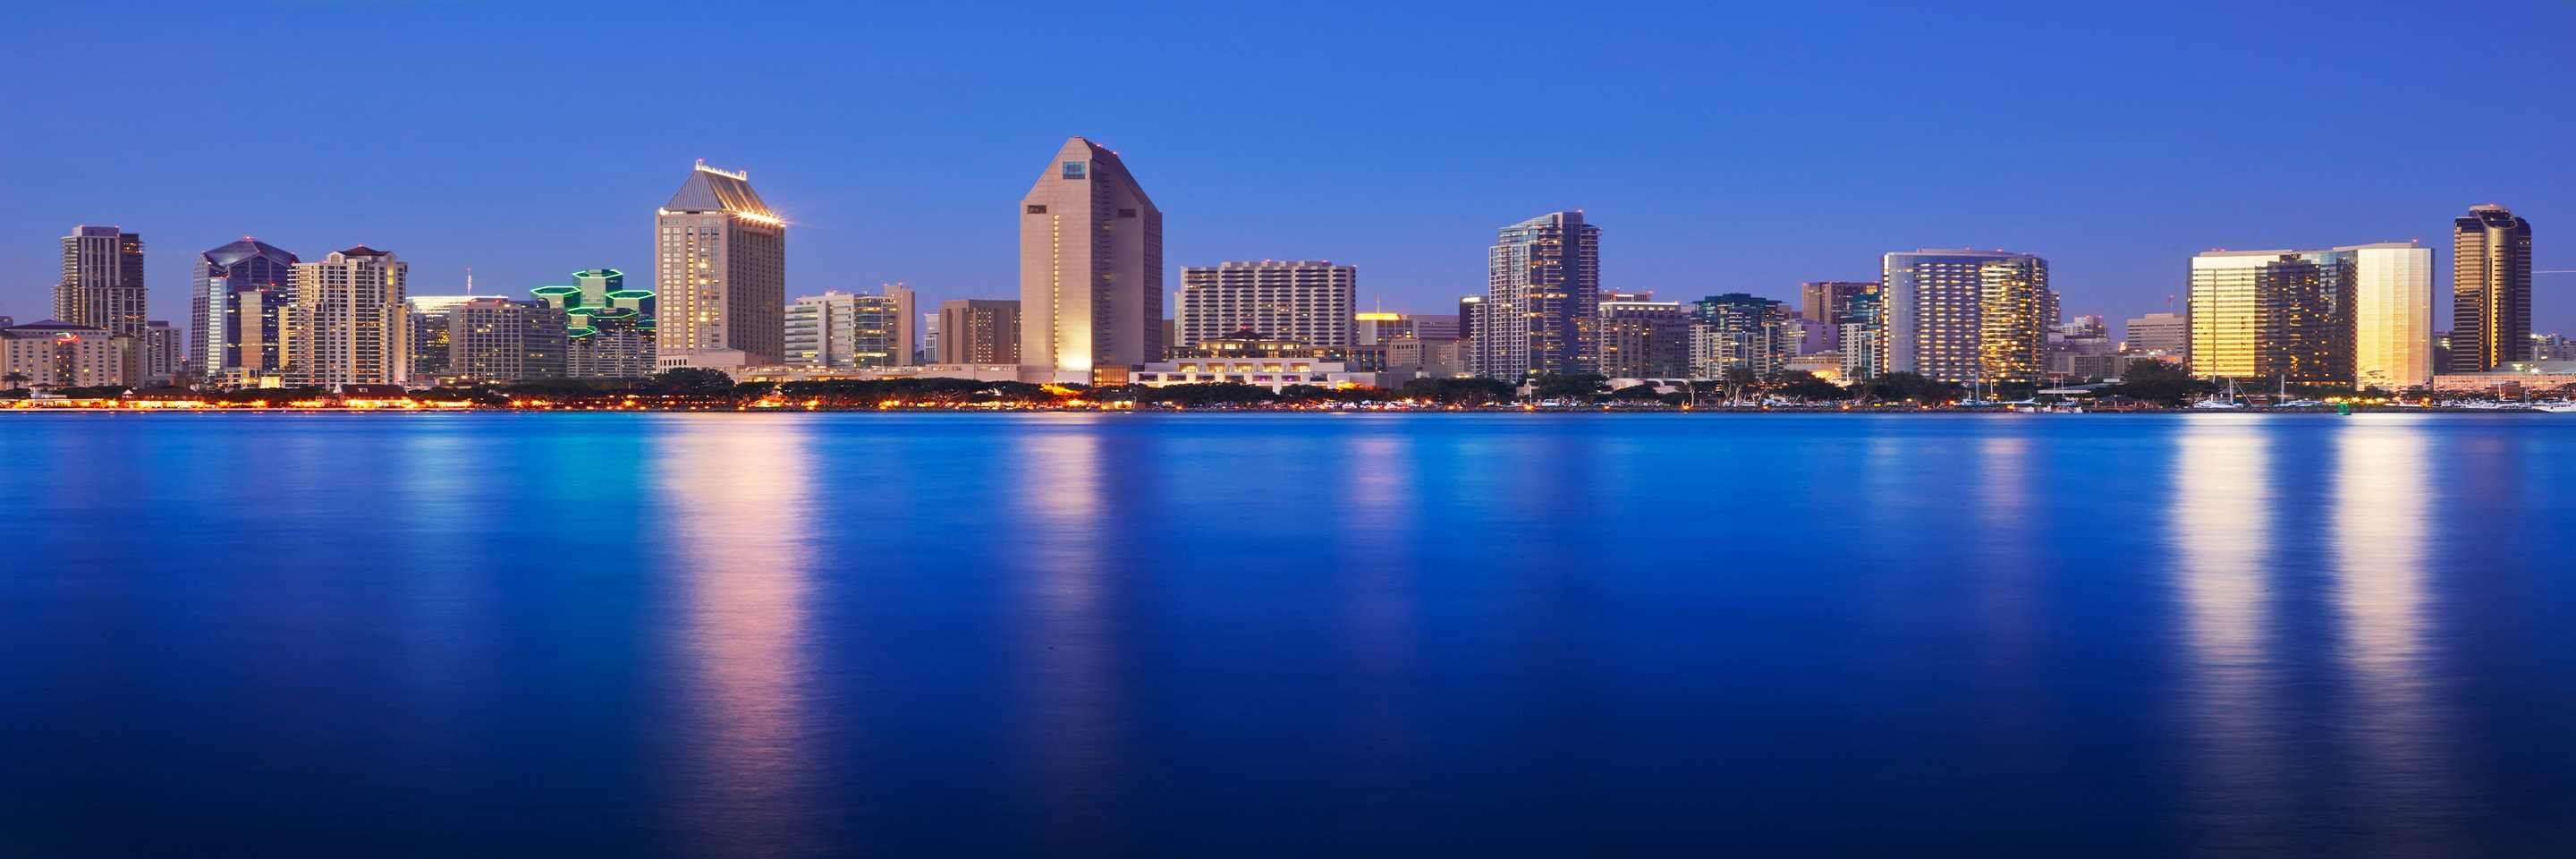 An evening view of San Diego harbor, with lights reflected in the water.